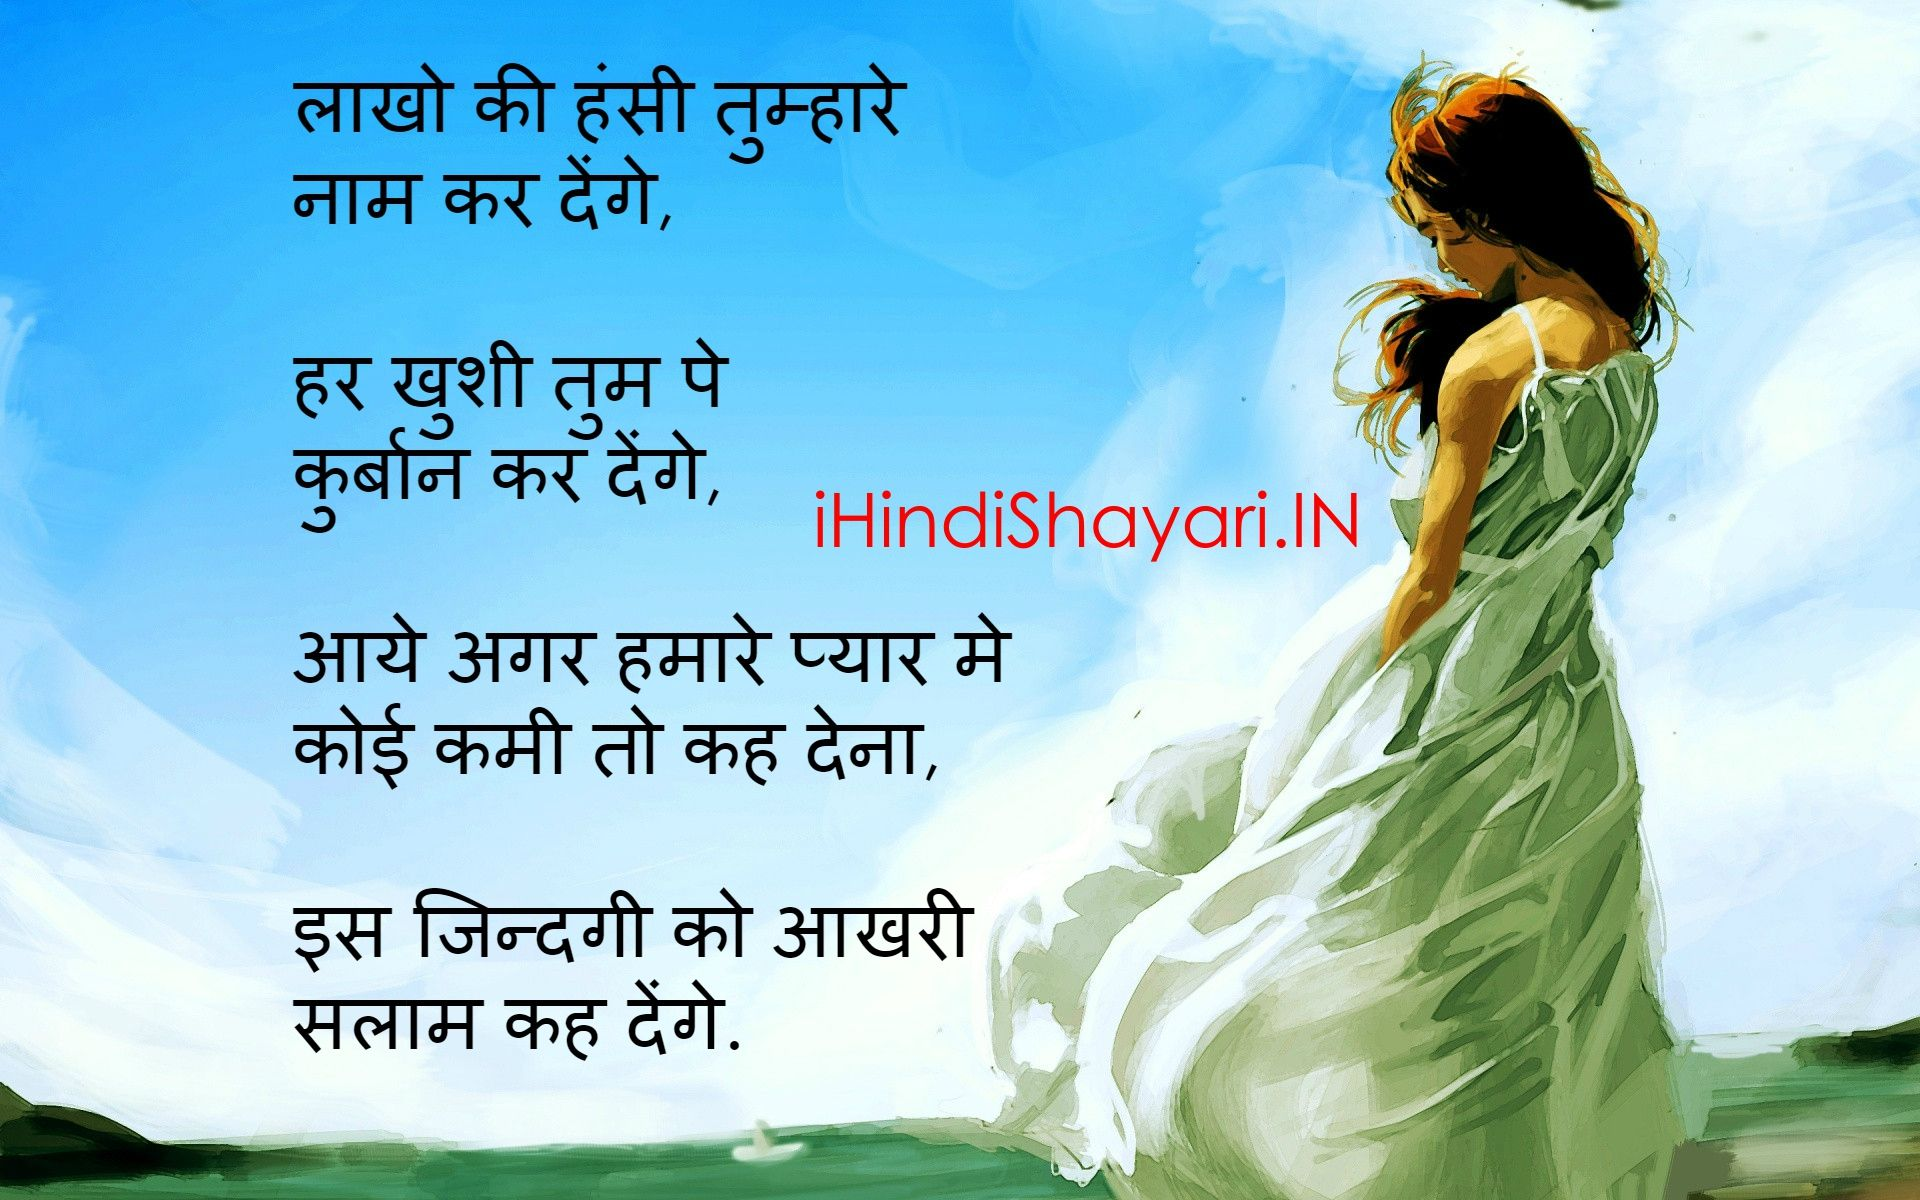 Wallpaper download love sad - Sad Love Shayari Images Download Hindi Love Shayari Wallpaper Download Sad Shayari In Hindi